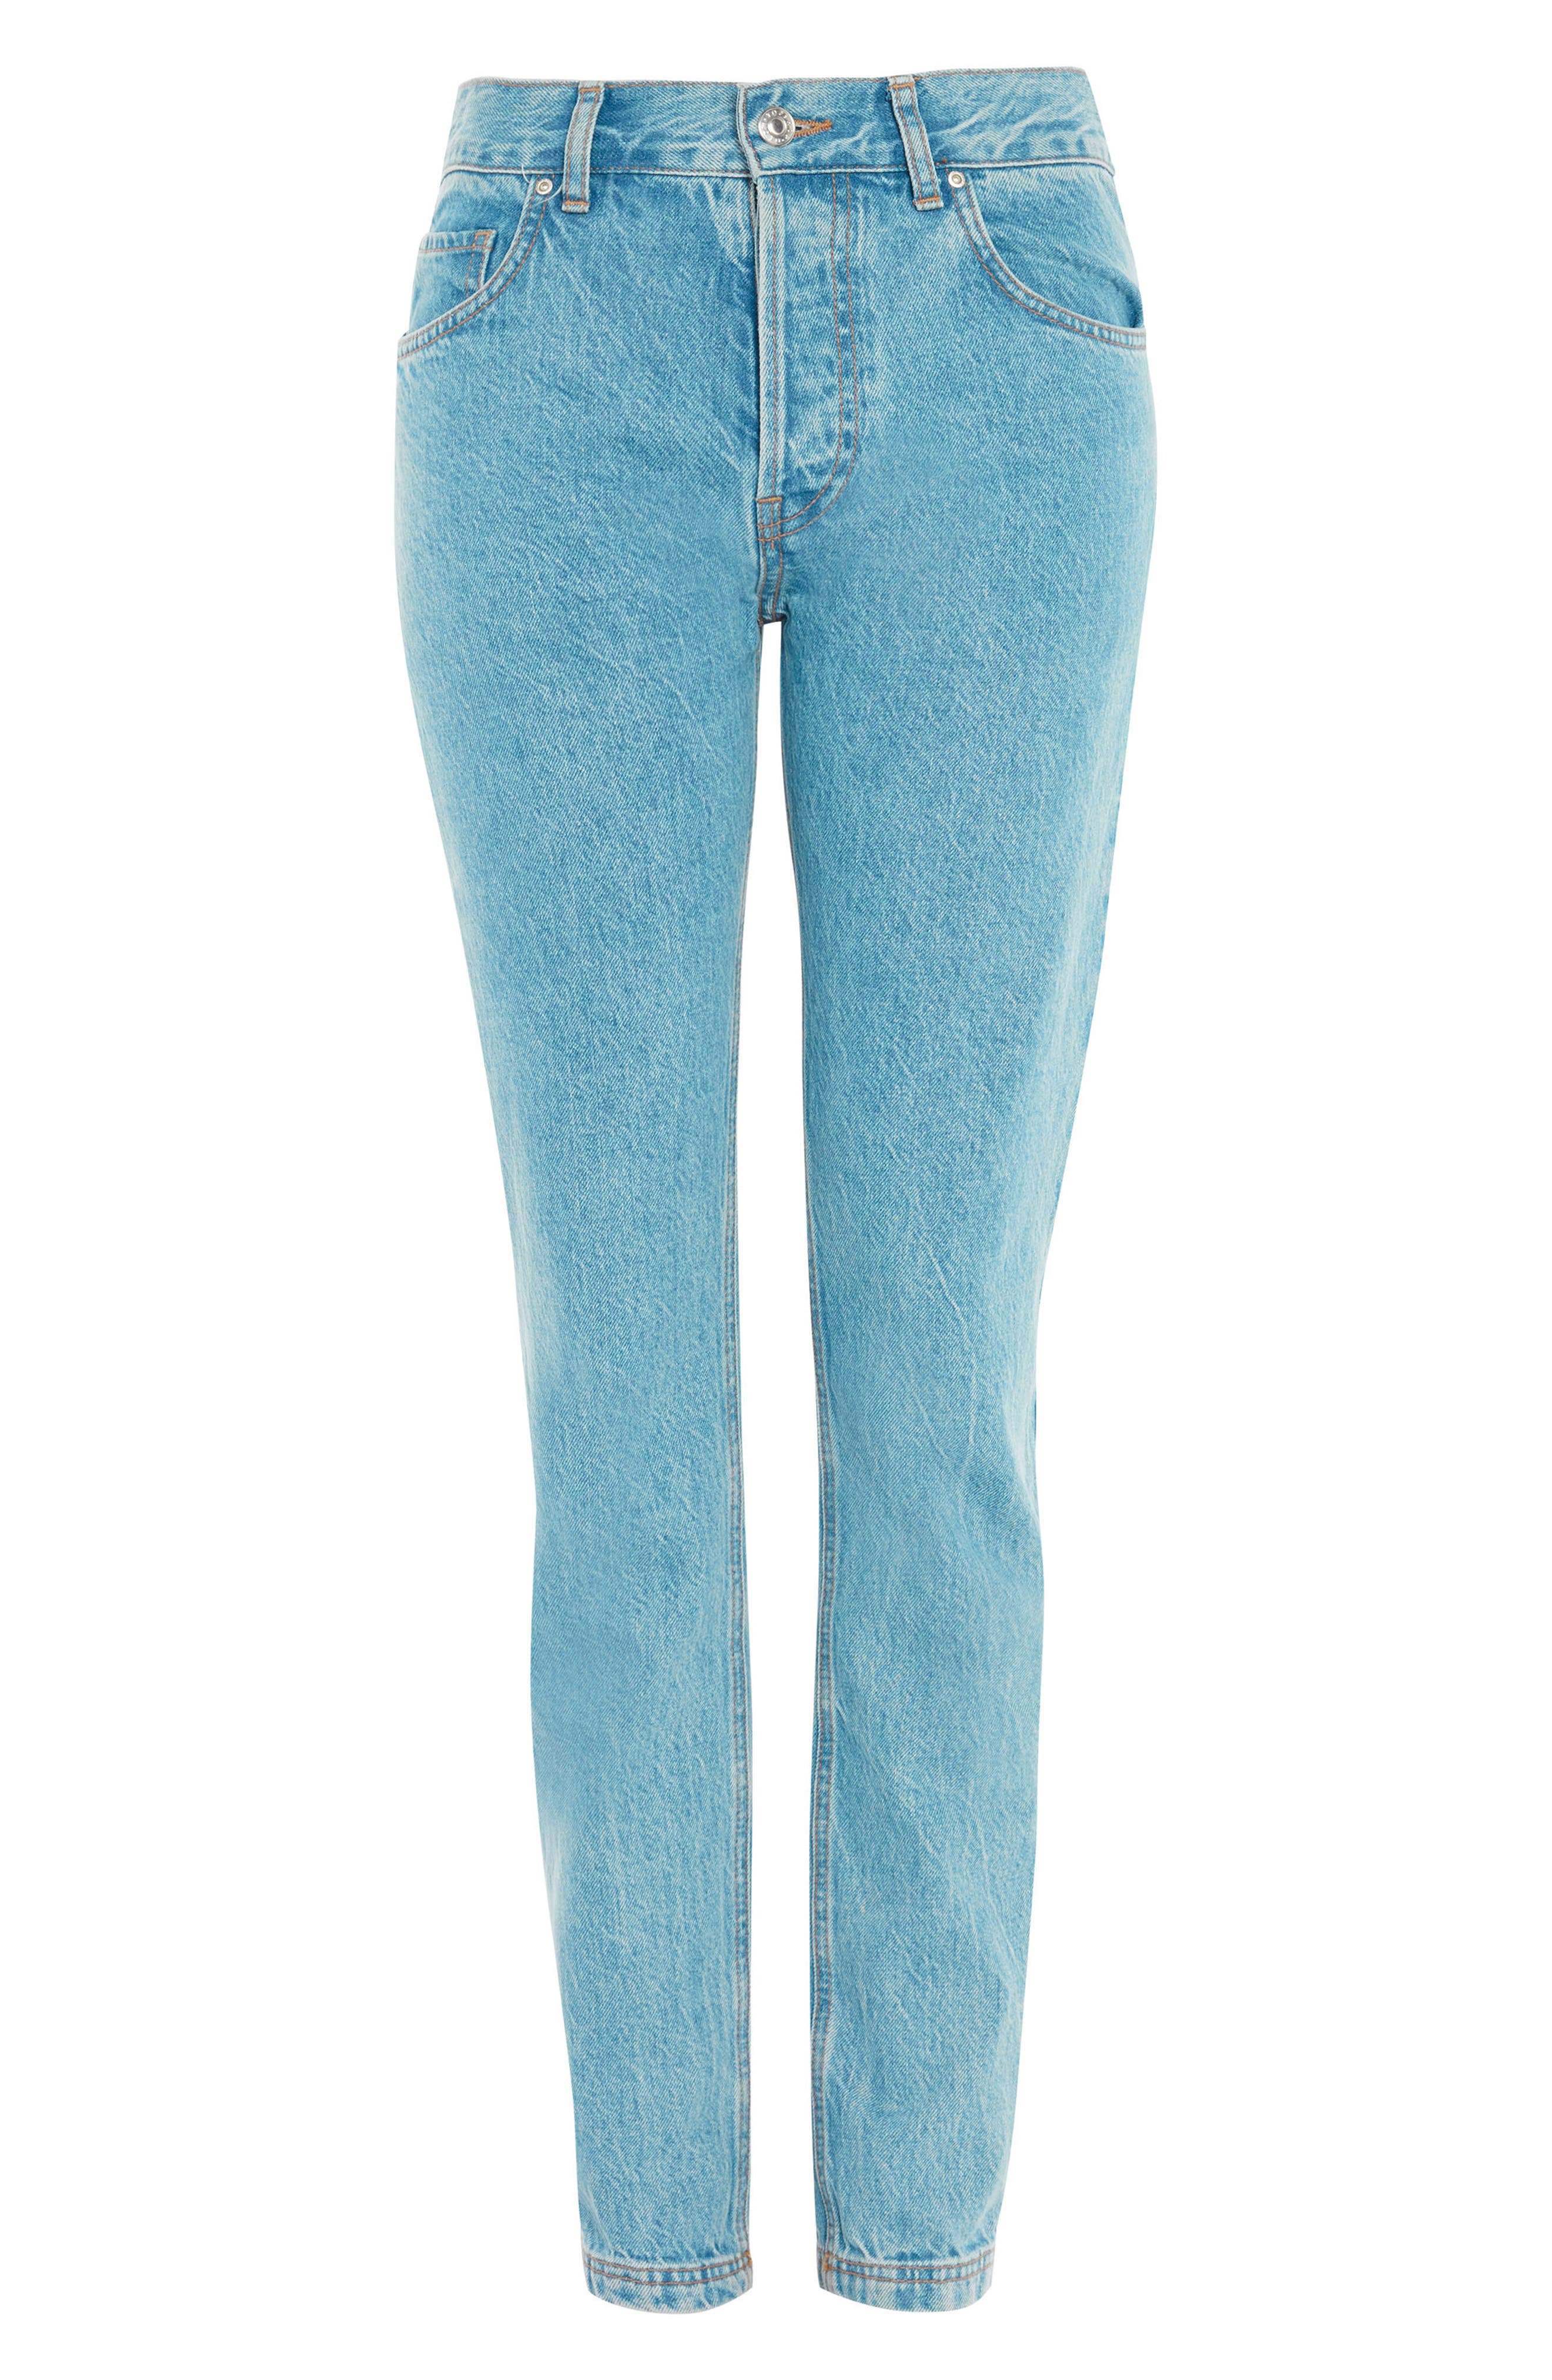 Alternate Image 1 Selected - Topshop Slim Straight Leg Jeans